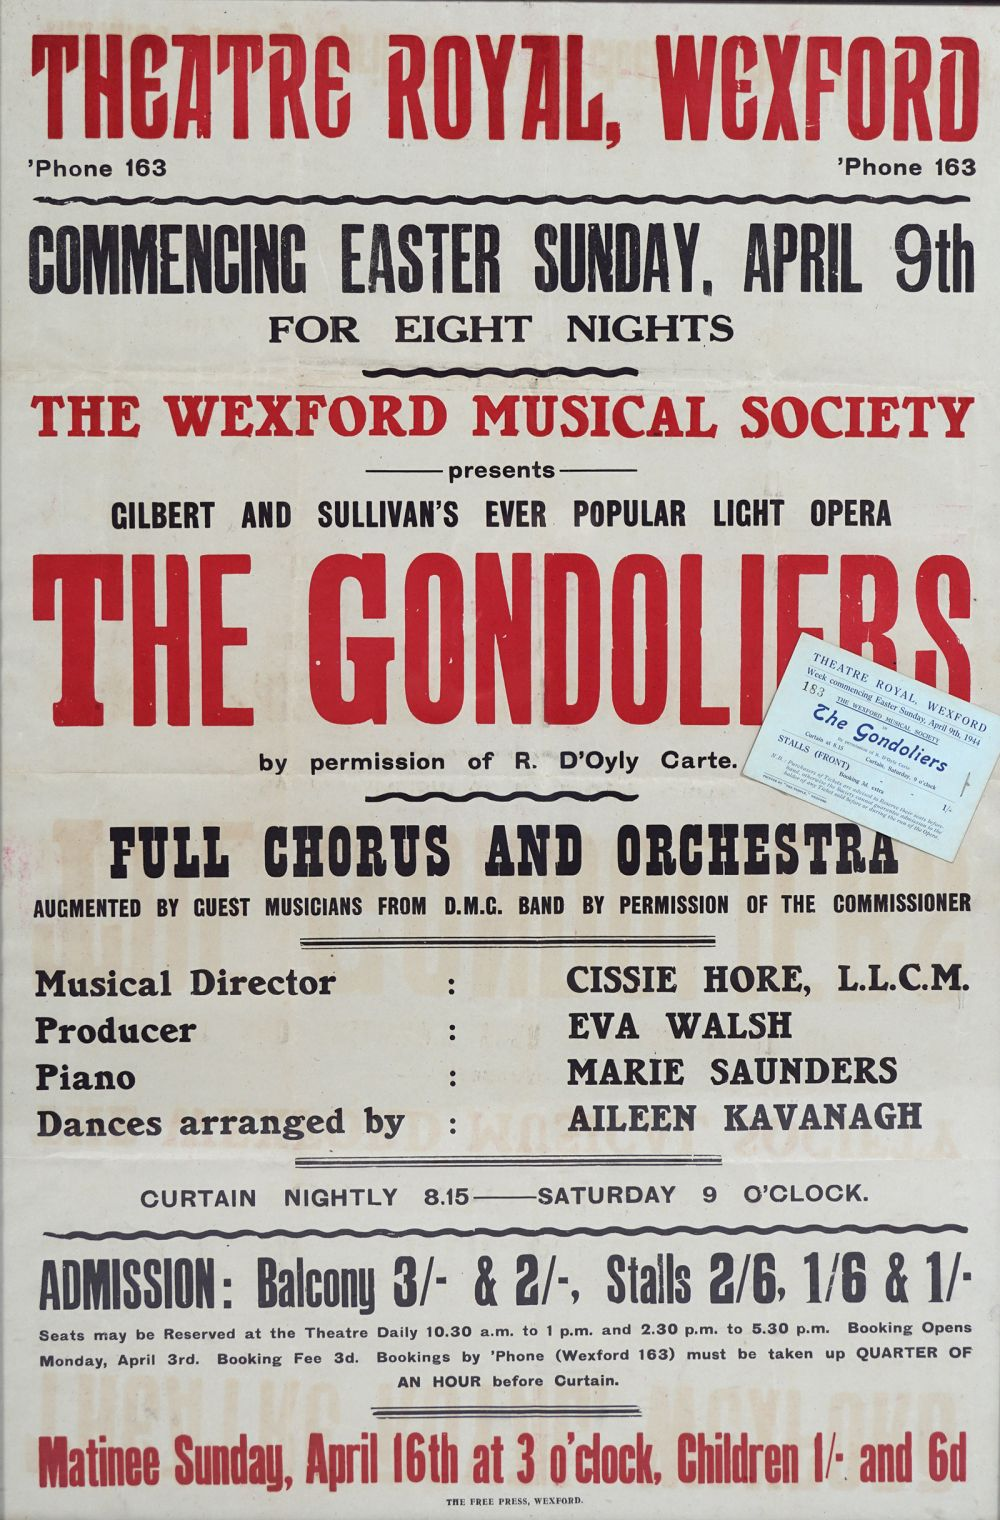 THEATRE ROYAL, WEXFORD ORIGINAL POSTER - Image 3 of 3